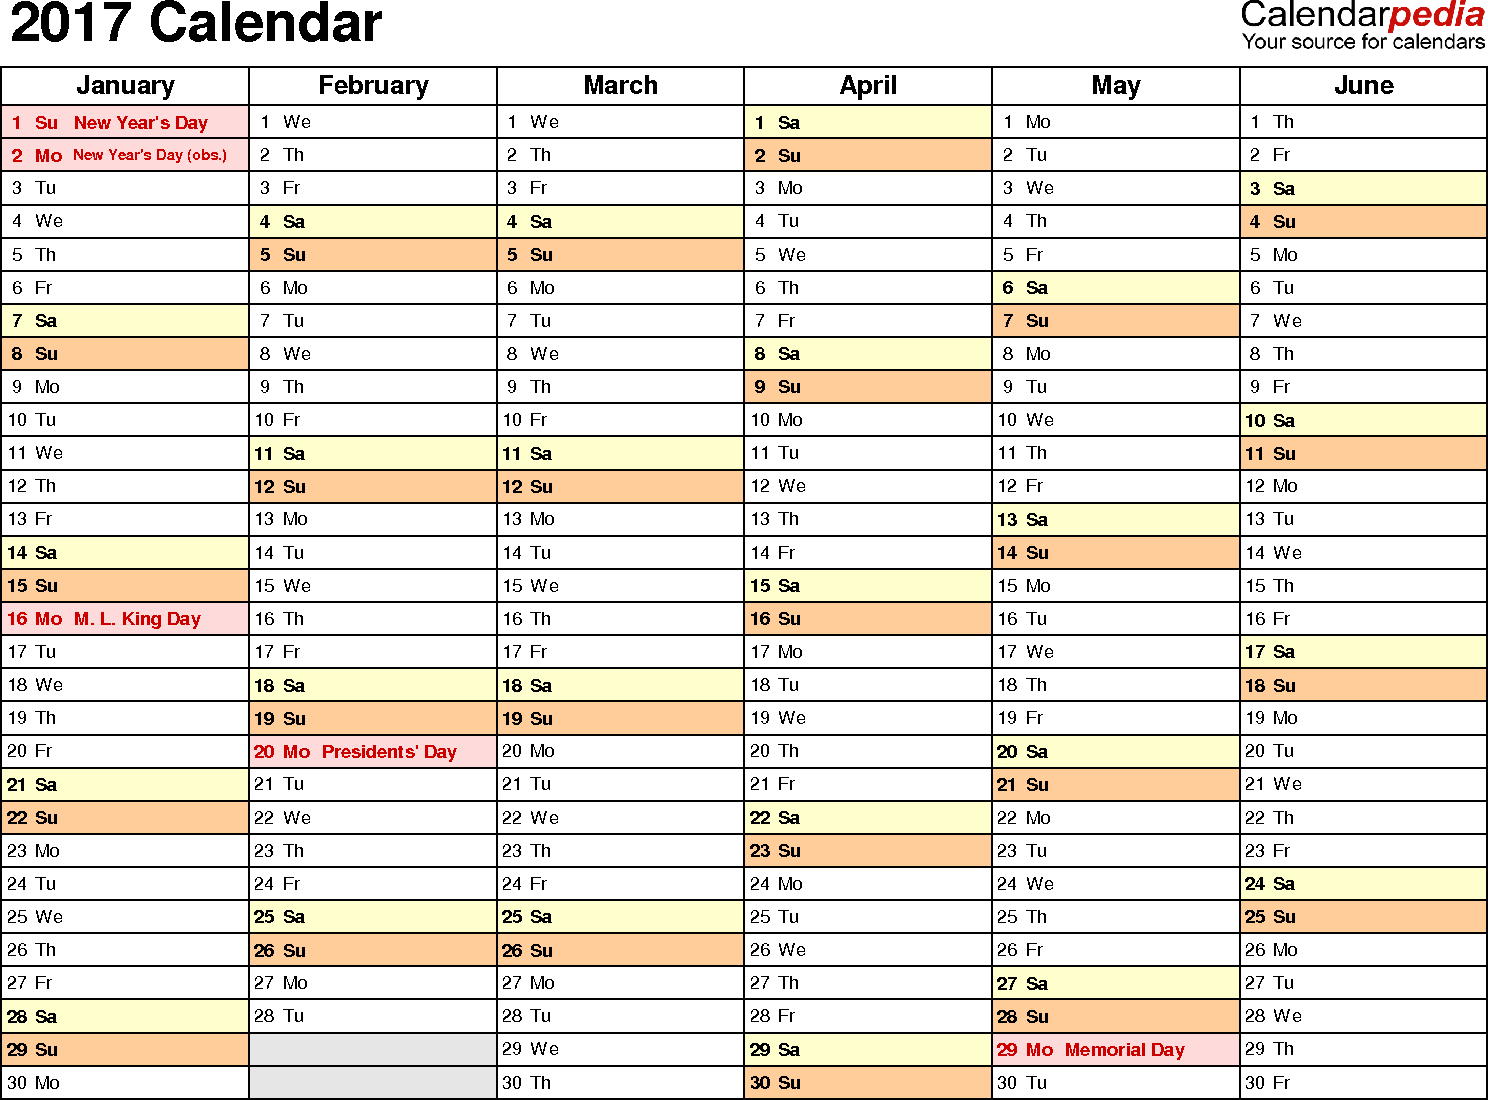 Ediblewildsus  Scenic  Calendar  Download  Free Printable Excel Templates Xls With Engaging Template   Calendar For Excel Months Horizontally  Pages Landscape Orientation With Archaic How To Find Duplicate Values In Excel Also Php Export To Excel In Addition Calculating P Value In Excel And Excel Vba Redim As Well As Making A Drop Down List In Excel Additionally How To Write If Then Statements In Excel From Calendarpediacom With Ediblewildsus  Engaging  Calendar  Download  Free Printable Excel Templates Xls With Archaic Template   Calendar For Excel Months Horizontally  Pages Landscape Orientation And Scenic How To Find Duplicate Values In Excel Also Php Export To Excel In Addition Calculating P Value In Excel From Calendarpediacom